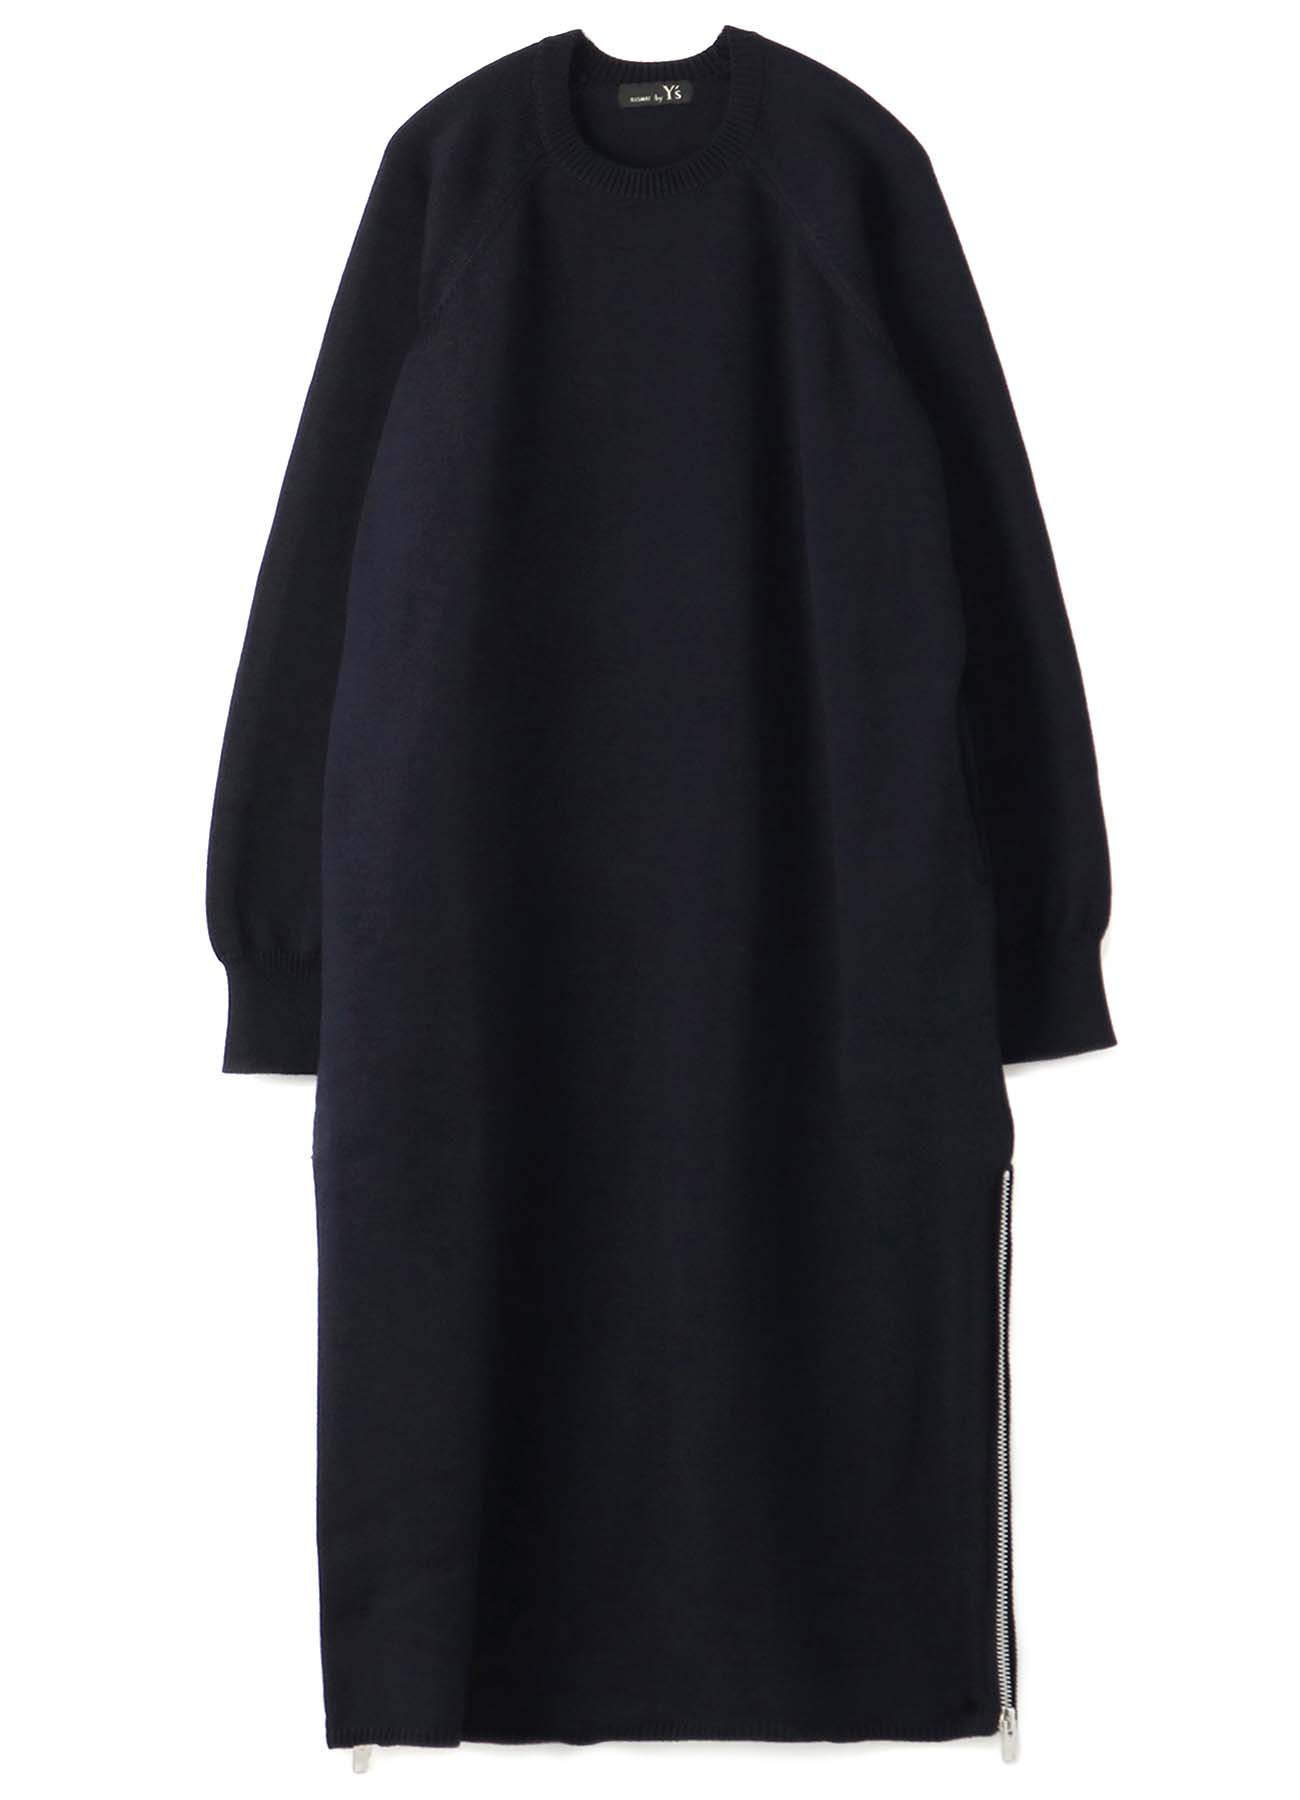 RISMATbyY's POLYESTER WOOL ZIP DRESS